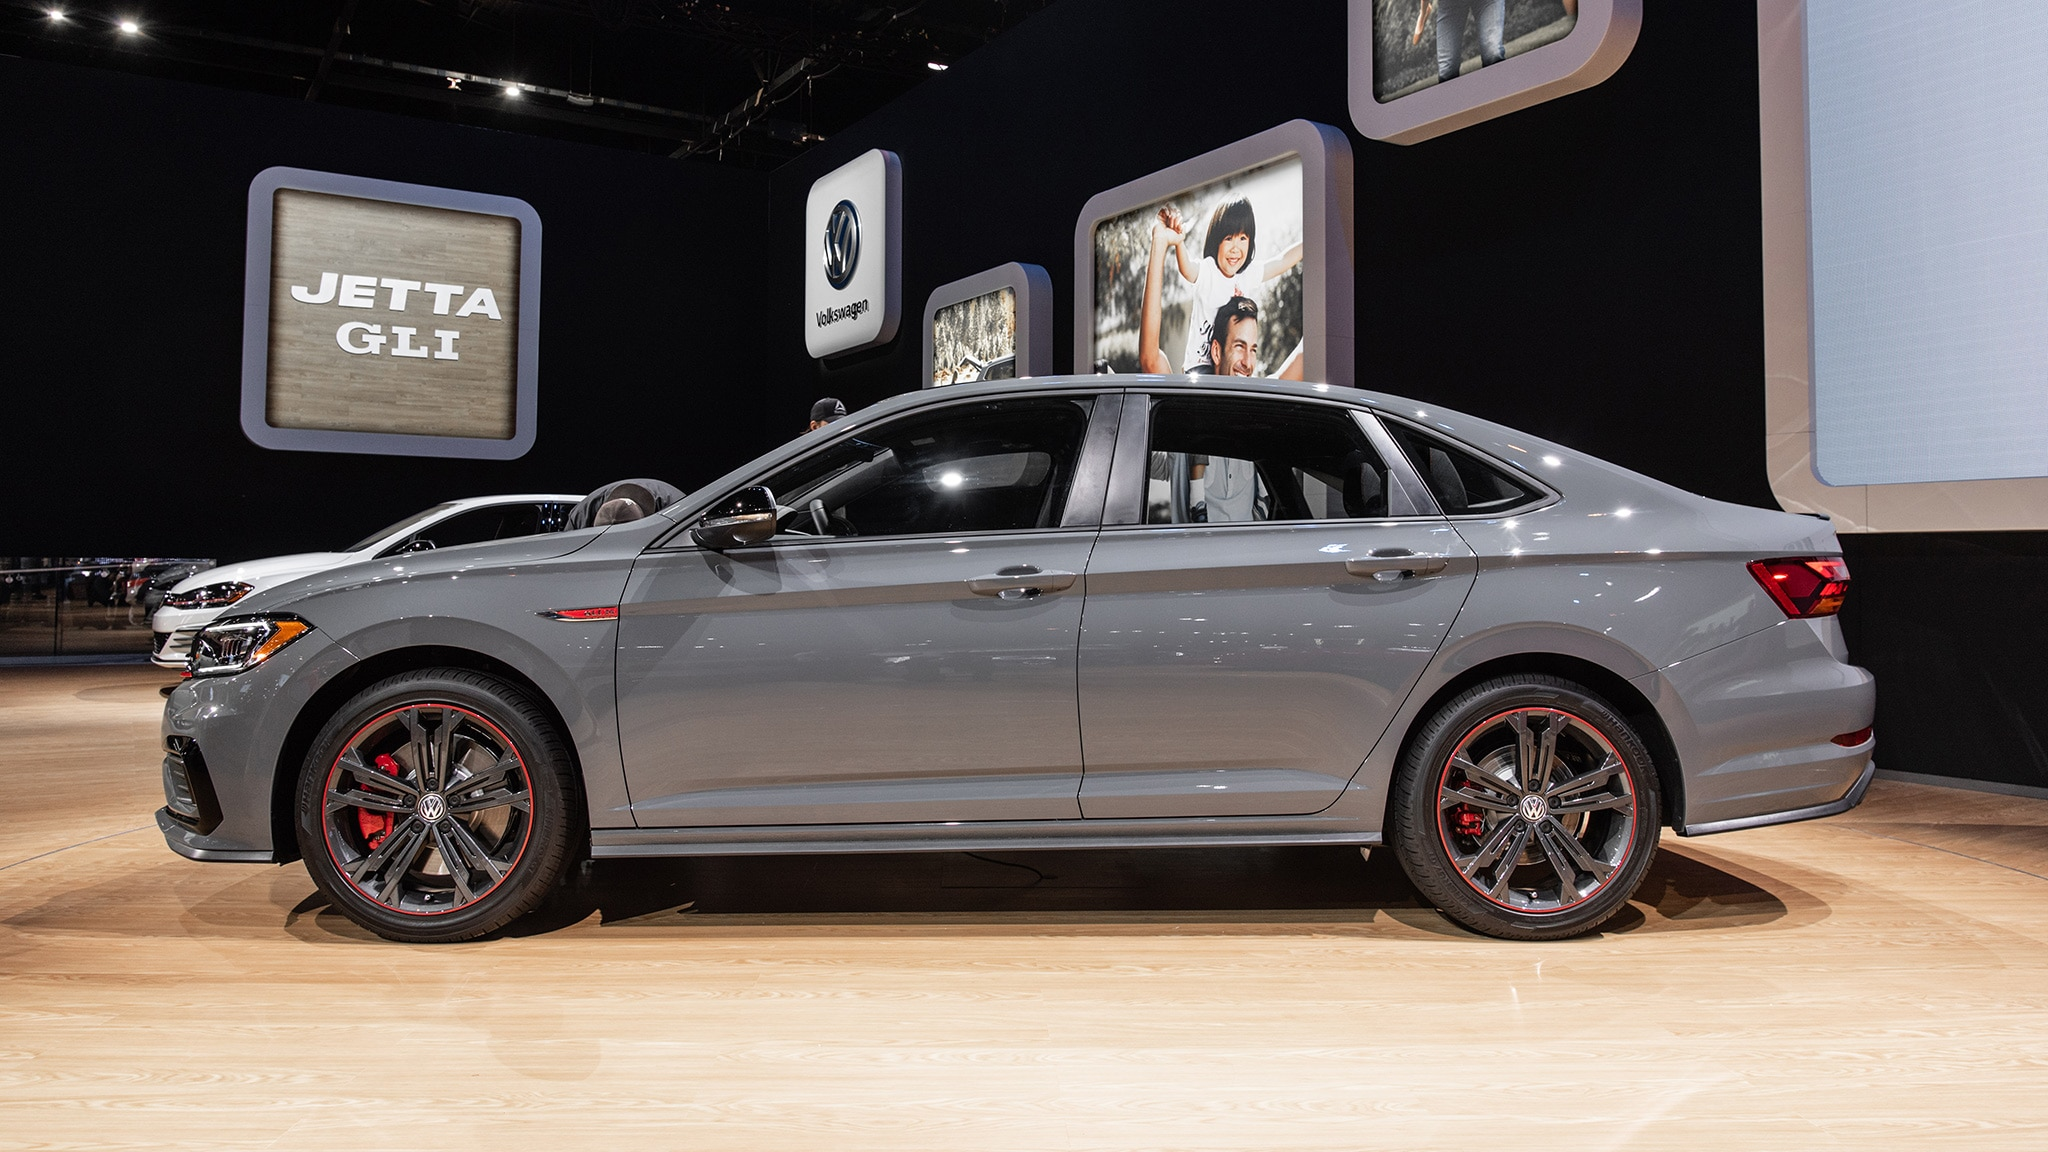 38 The 2019 Vw Jetta Gli Model